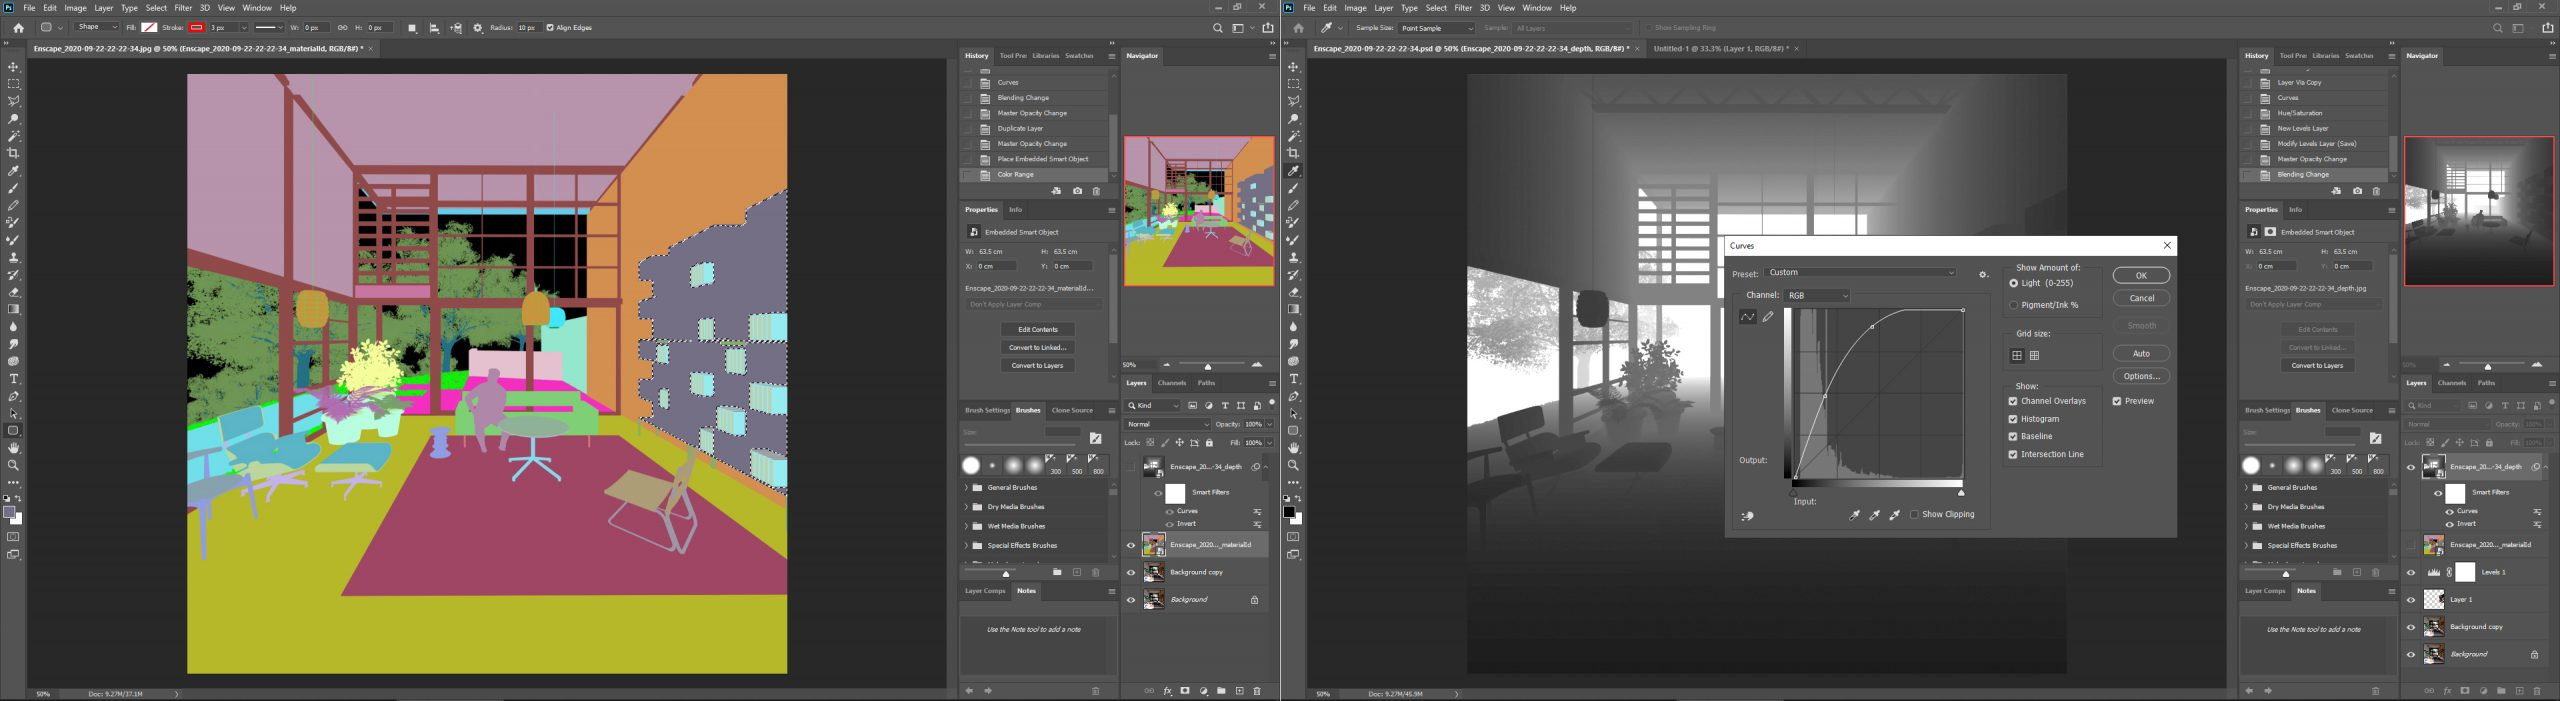 It indicates how to use material ID map and Depth map in photoshop for post-production.